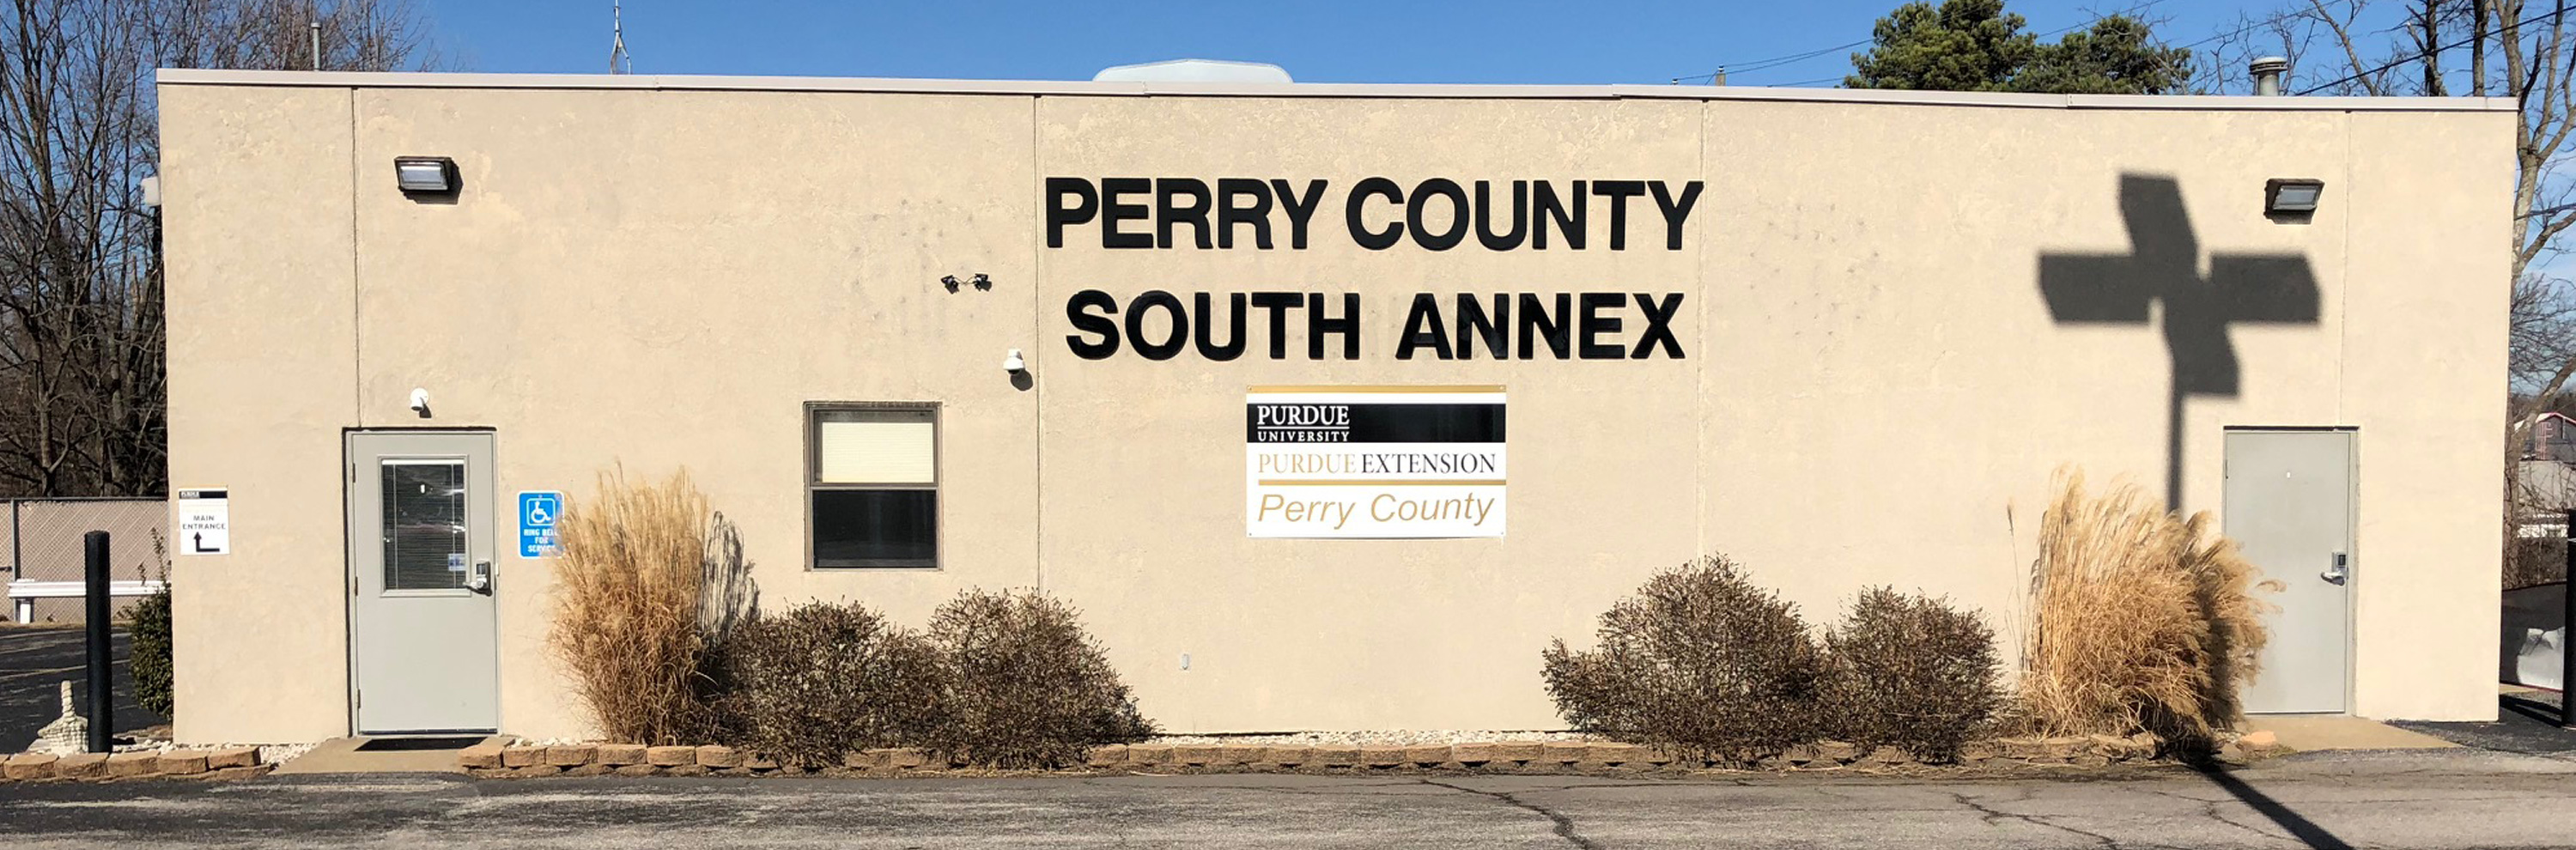 Perry County South Annex